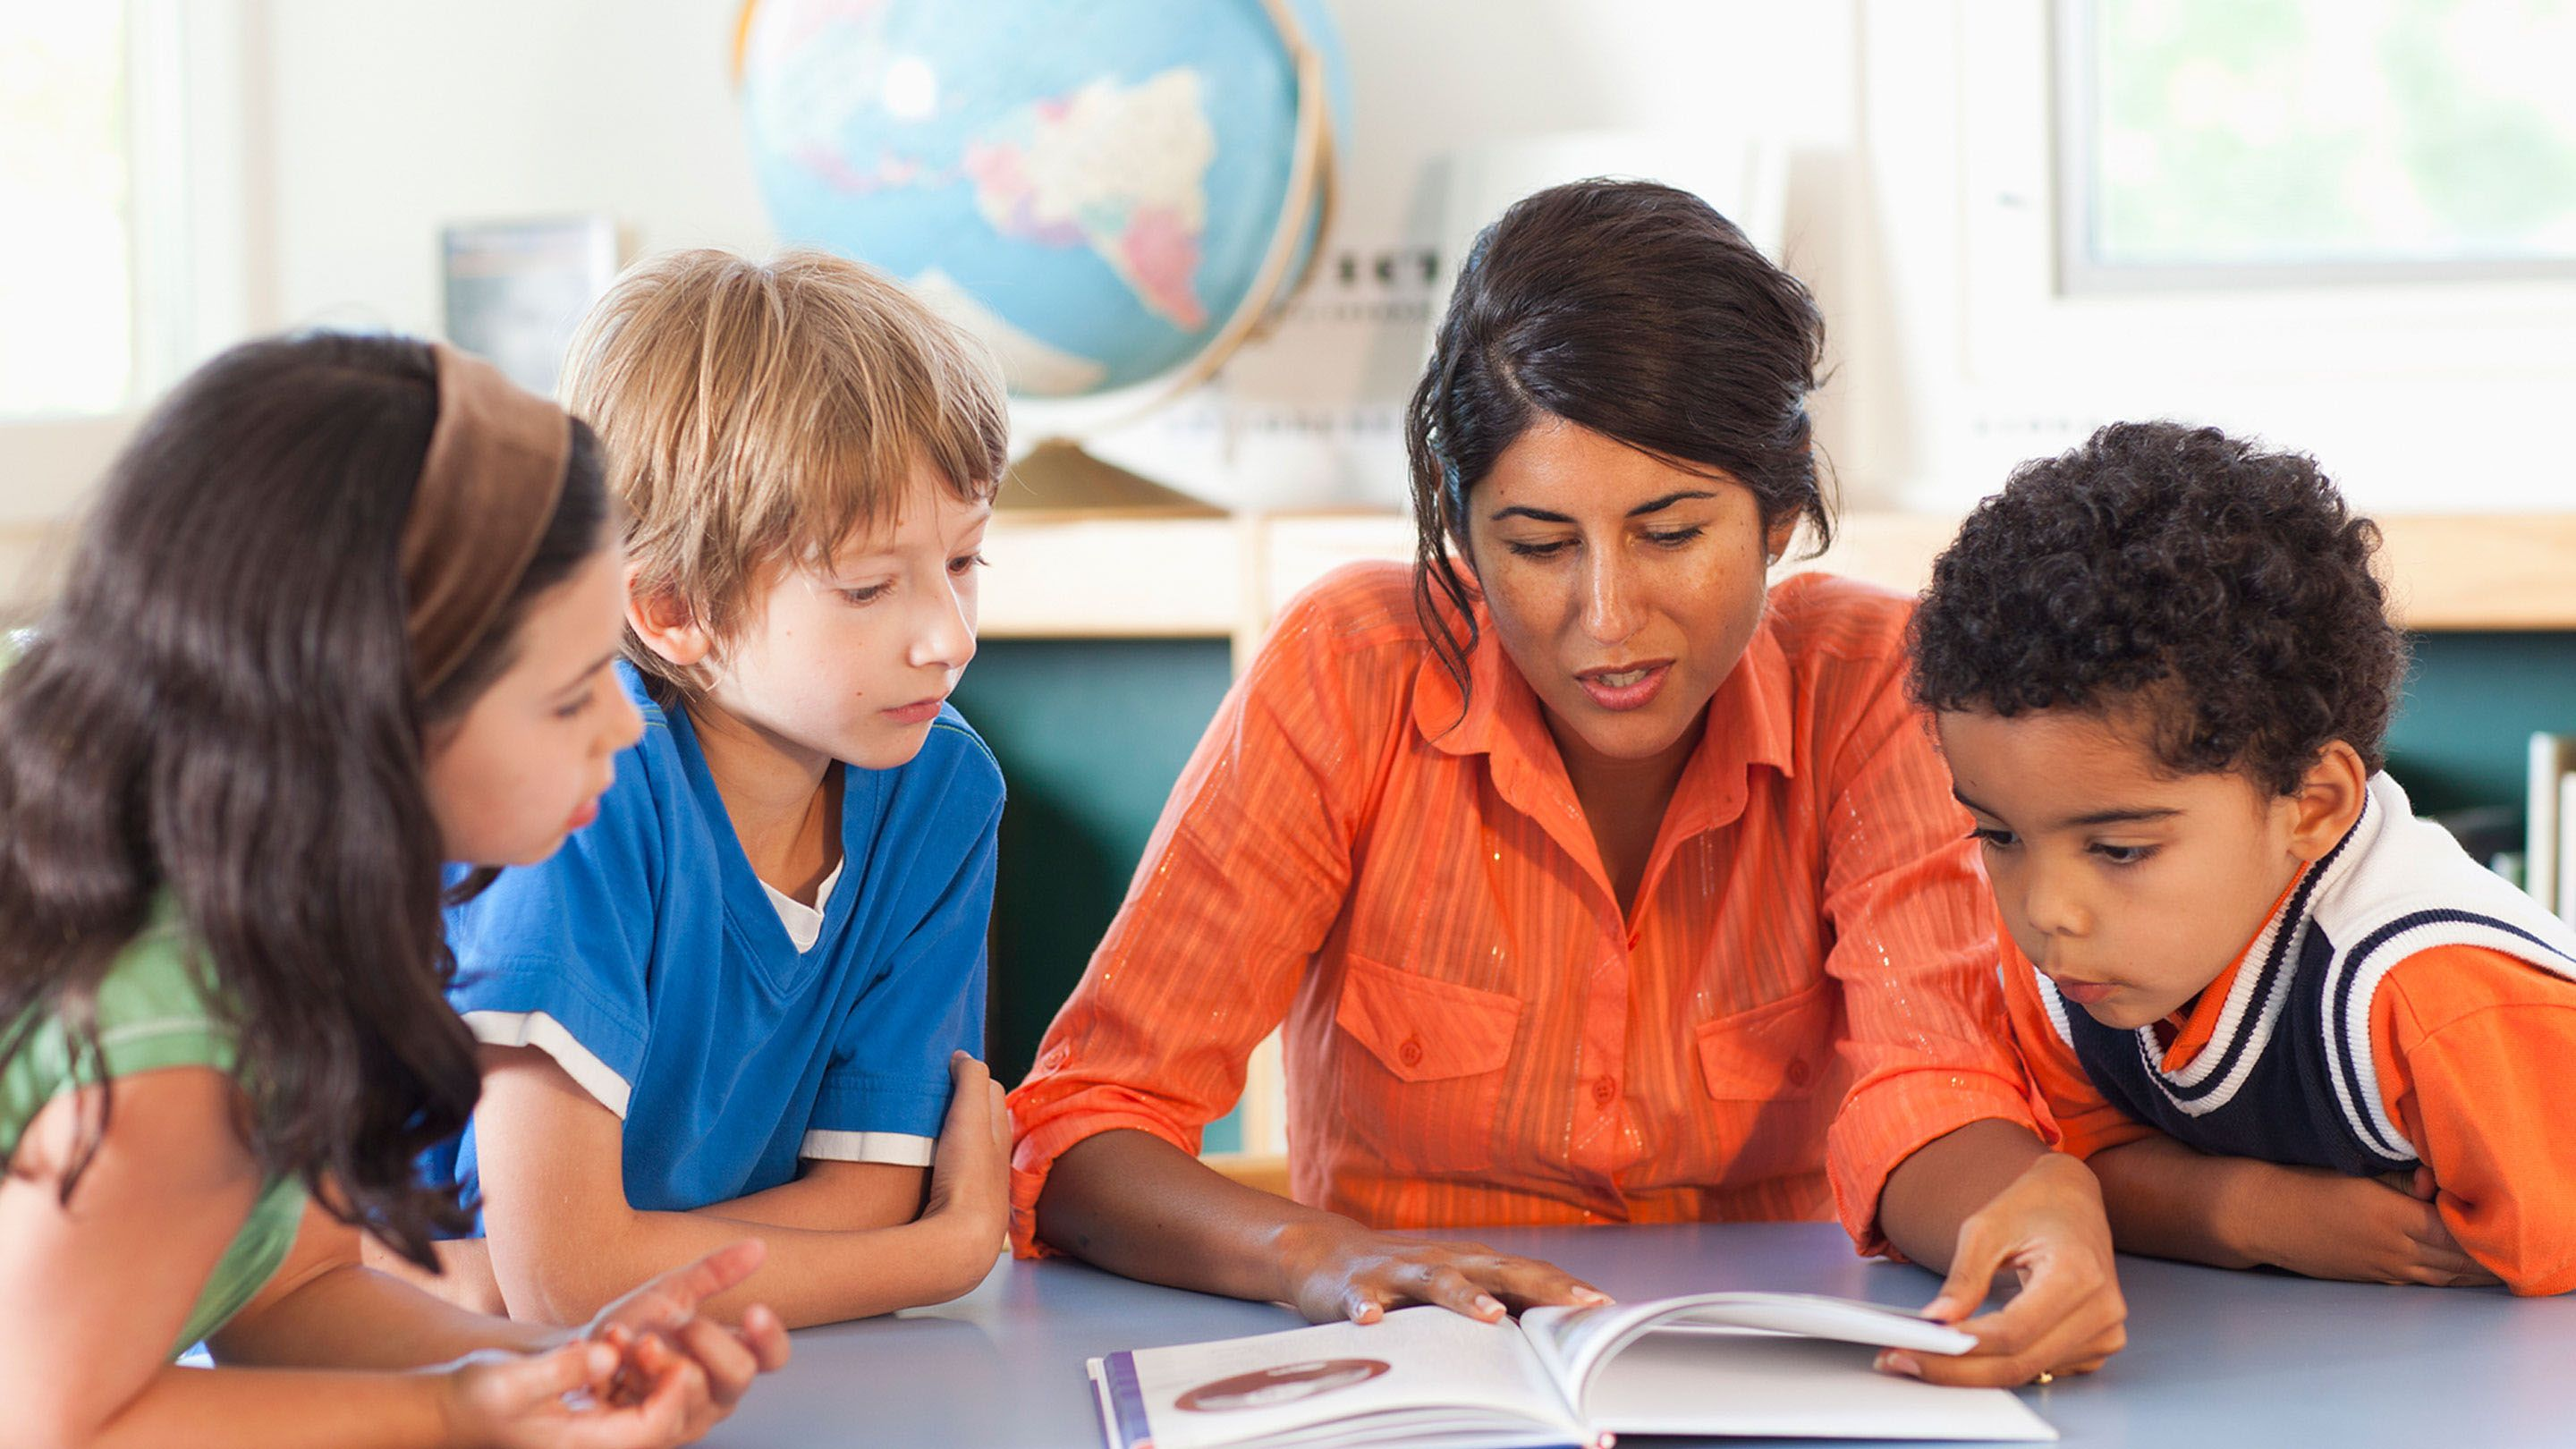 A teacher works with a group of students.